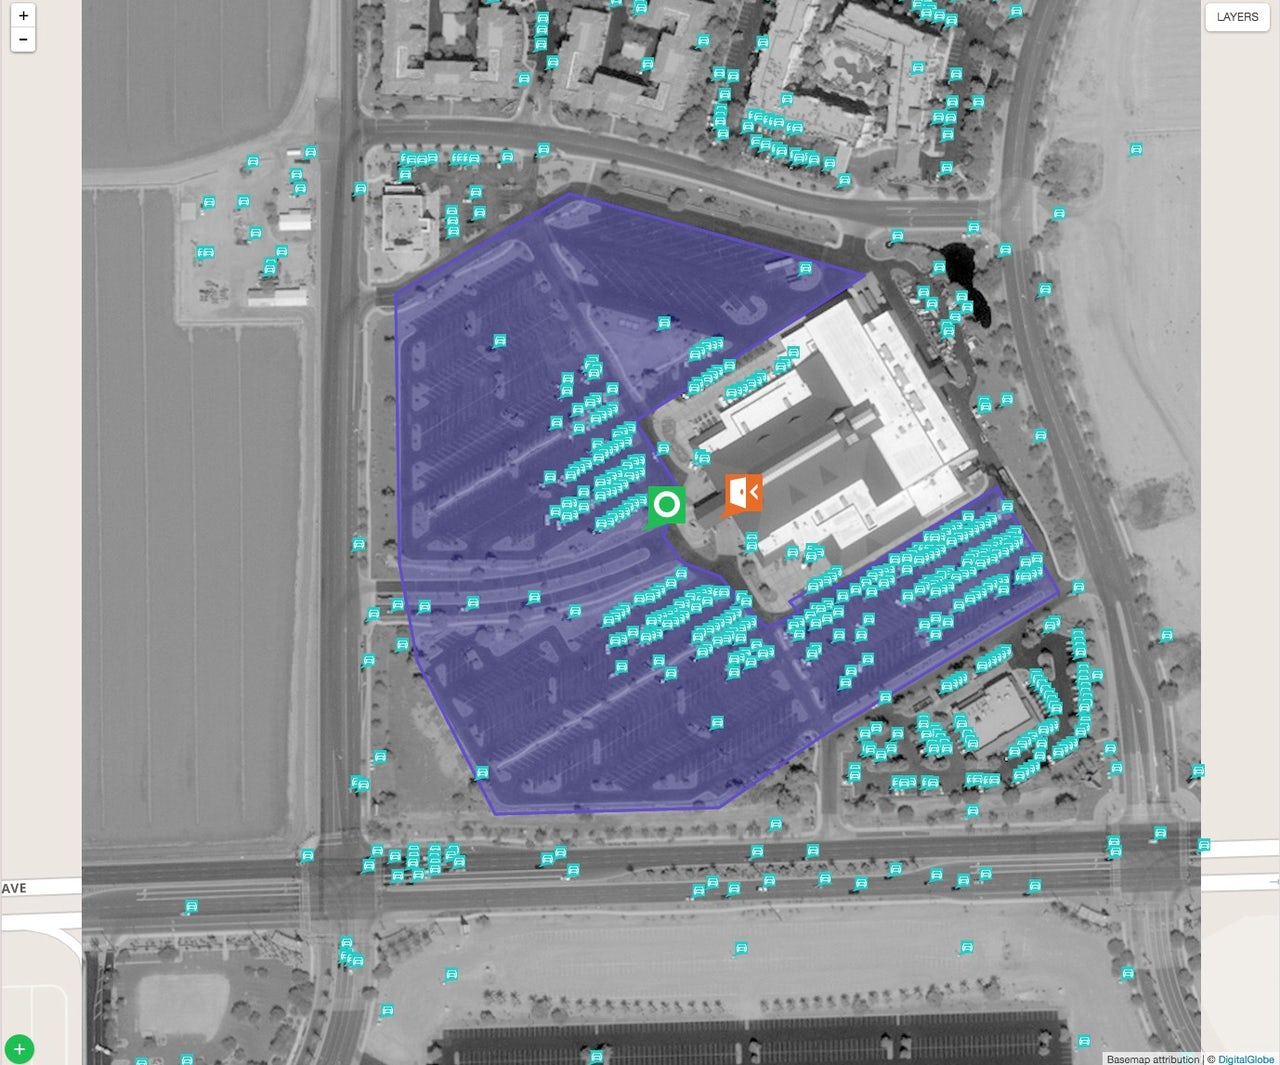 An image of a Cabela's parking lot taken by Digital Globe and analyzed by Orbital Insight.